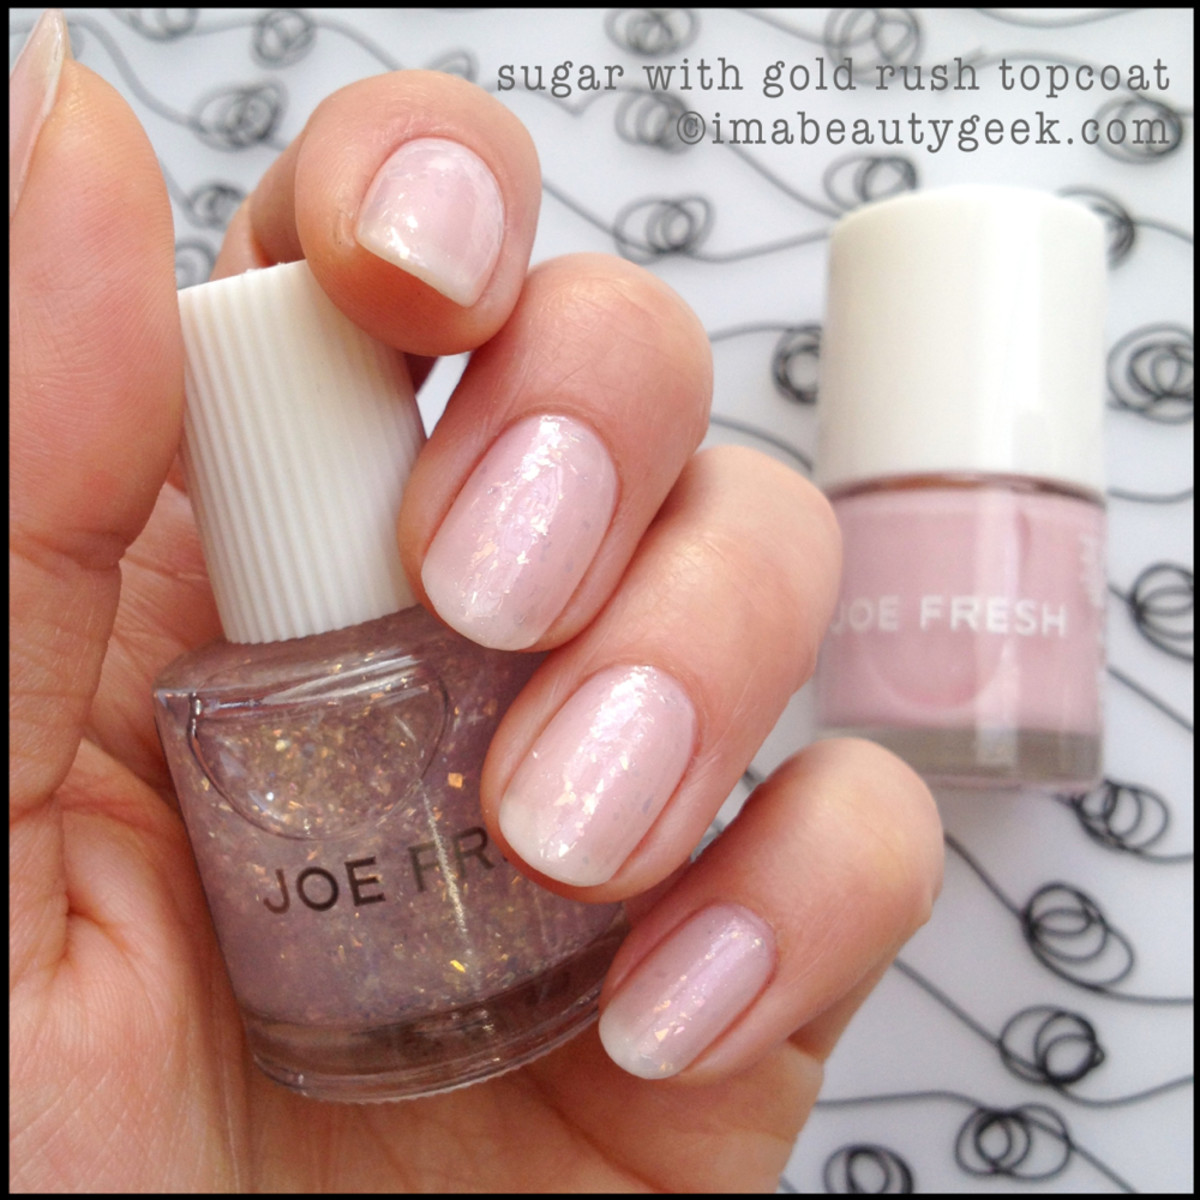 Joe Fresh Polish Sugar with Gold Rush Topcoat